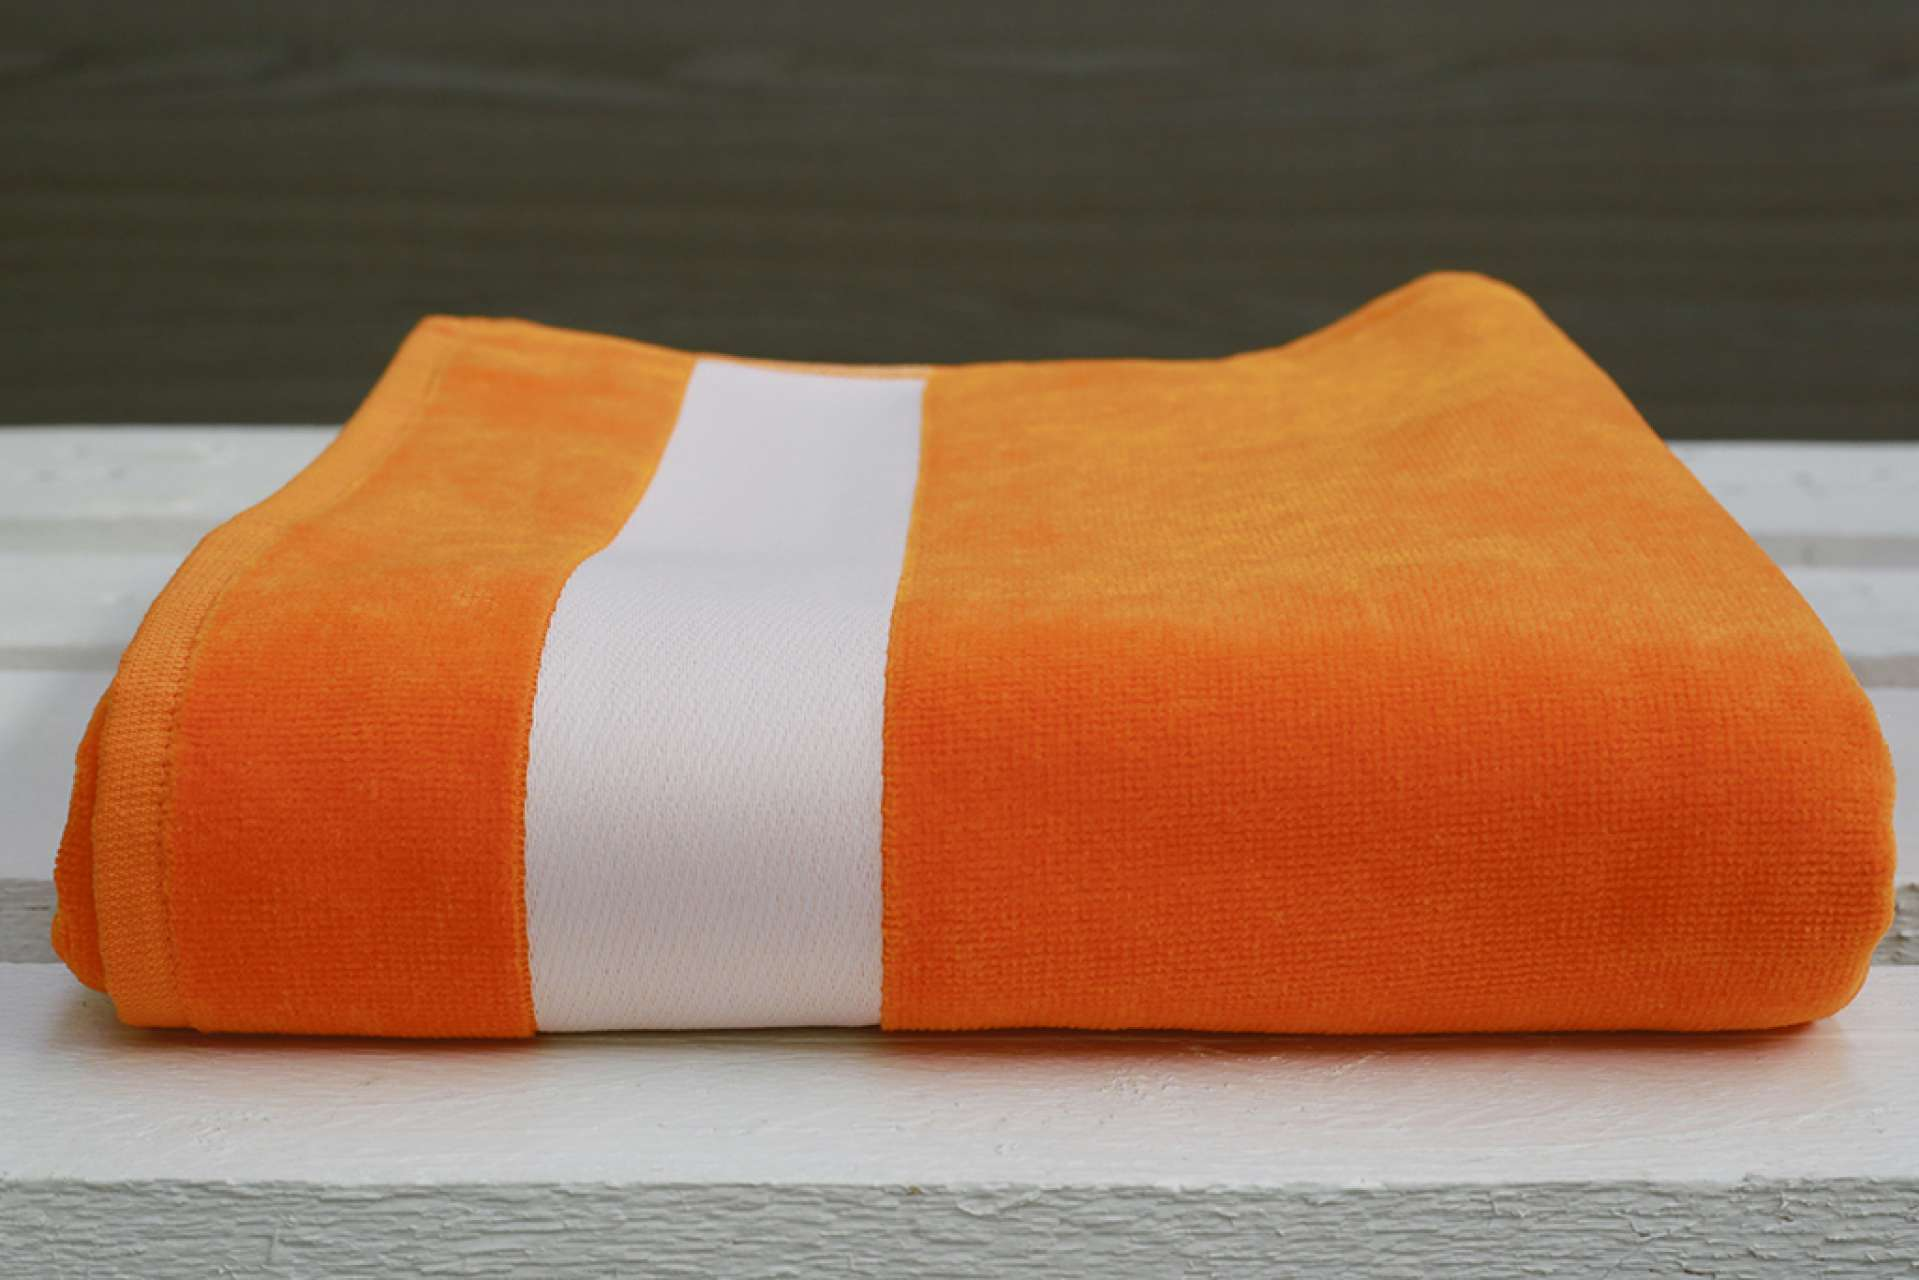 OLIMA VELOUR BEACH TOWEL